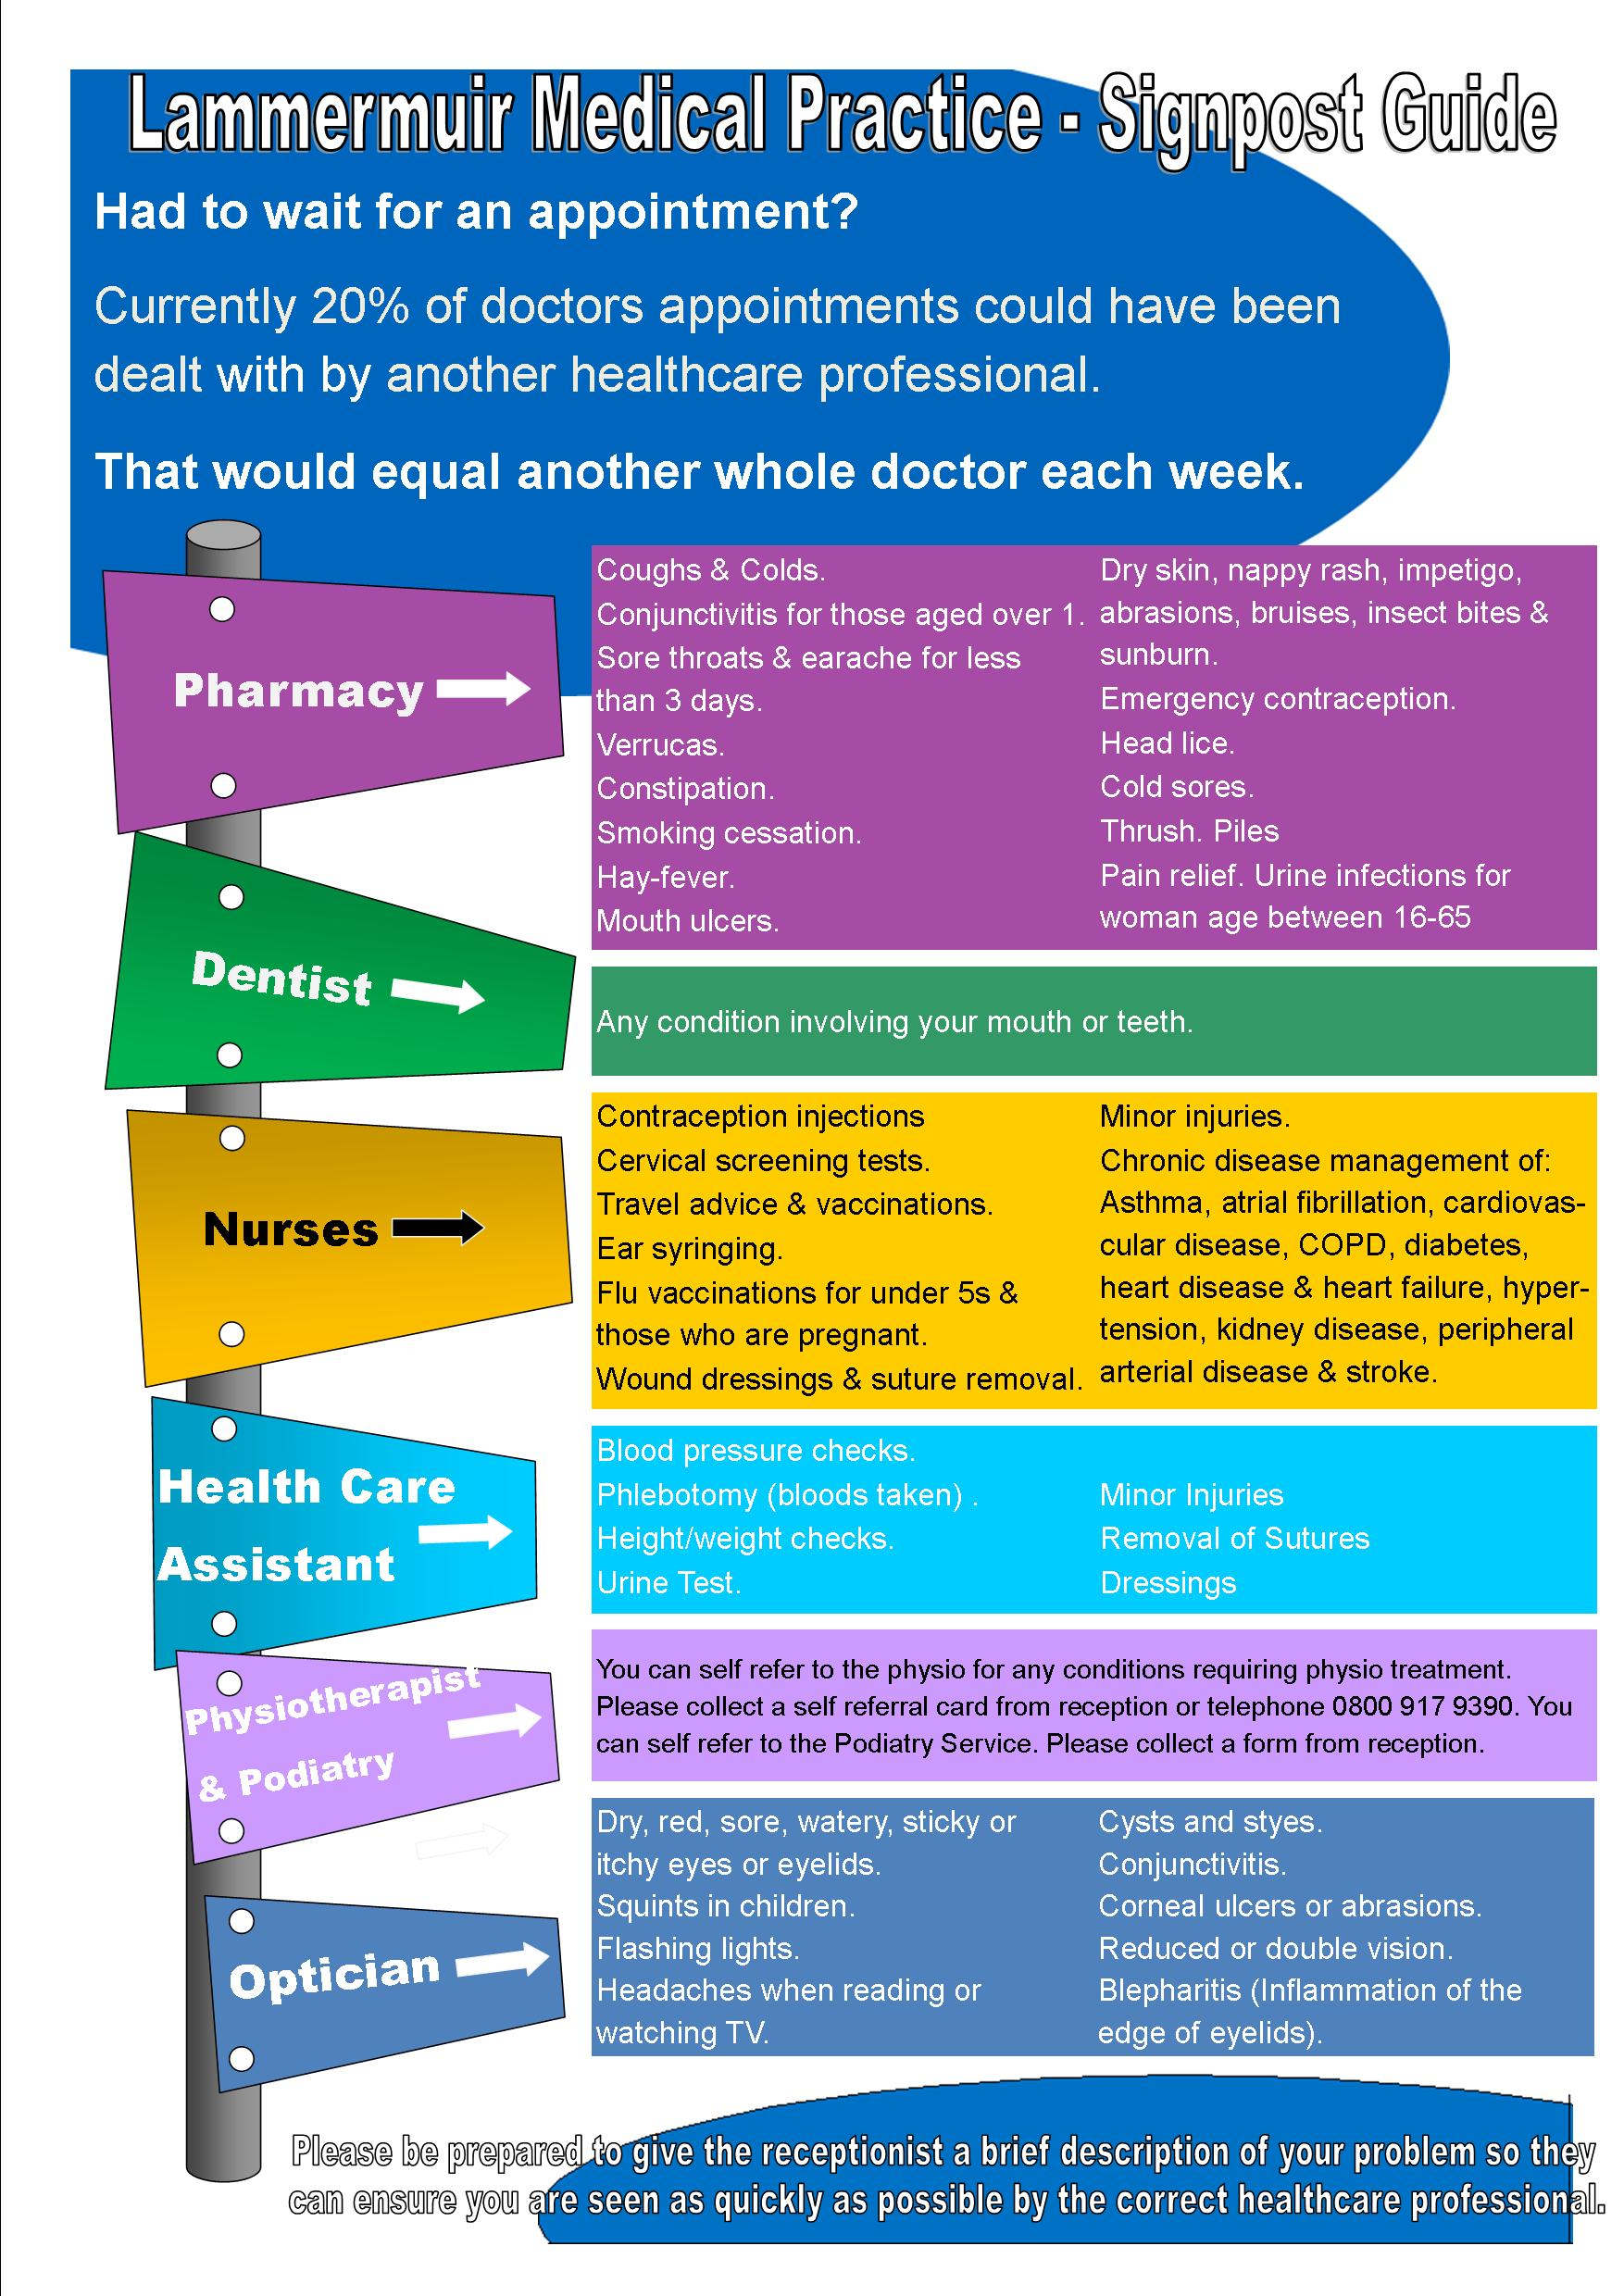 Lammermuir Medical Practice- Signposting Guide